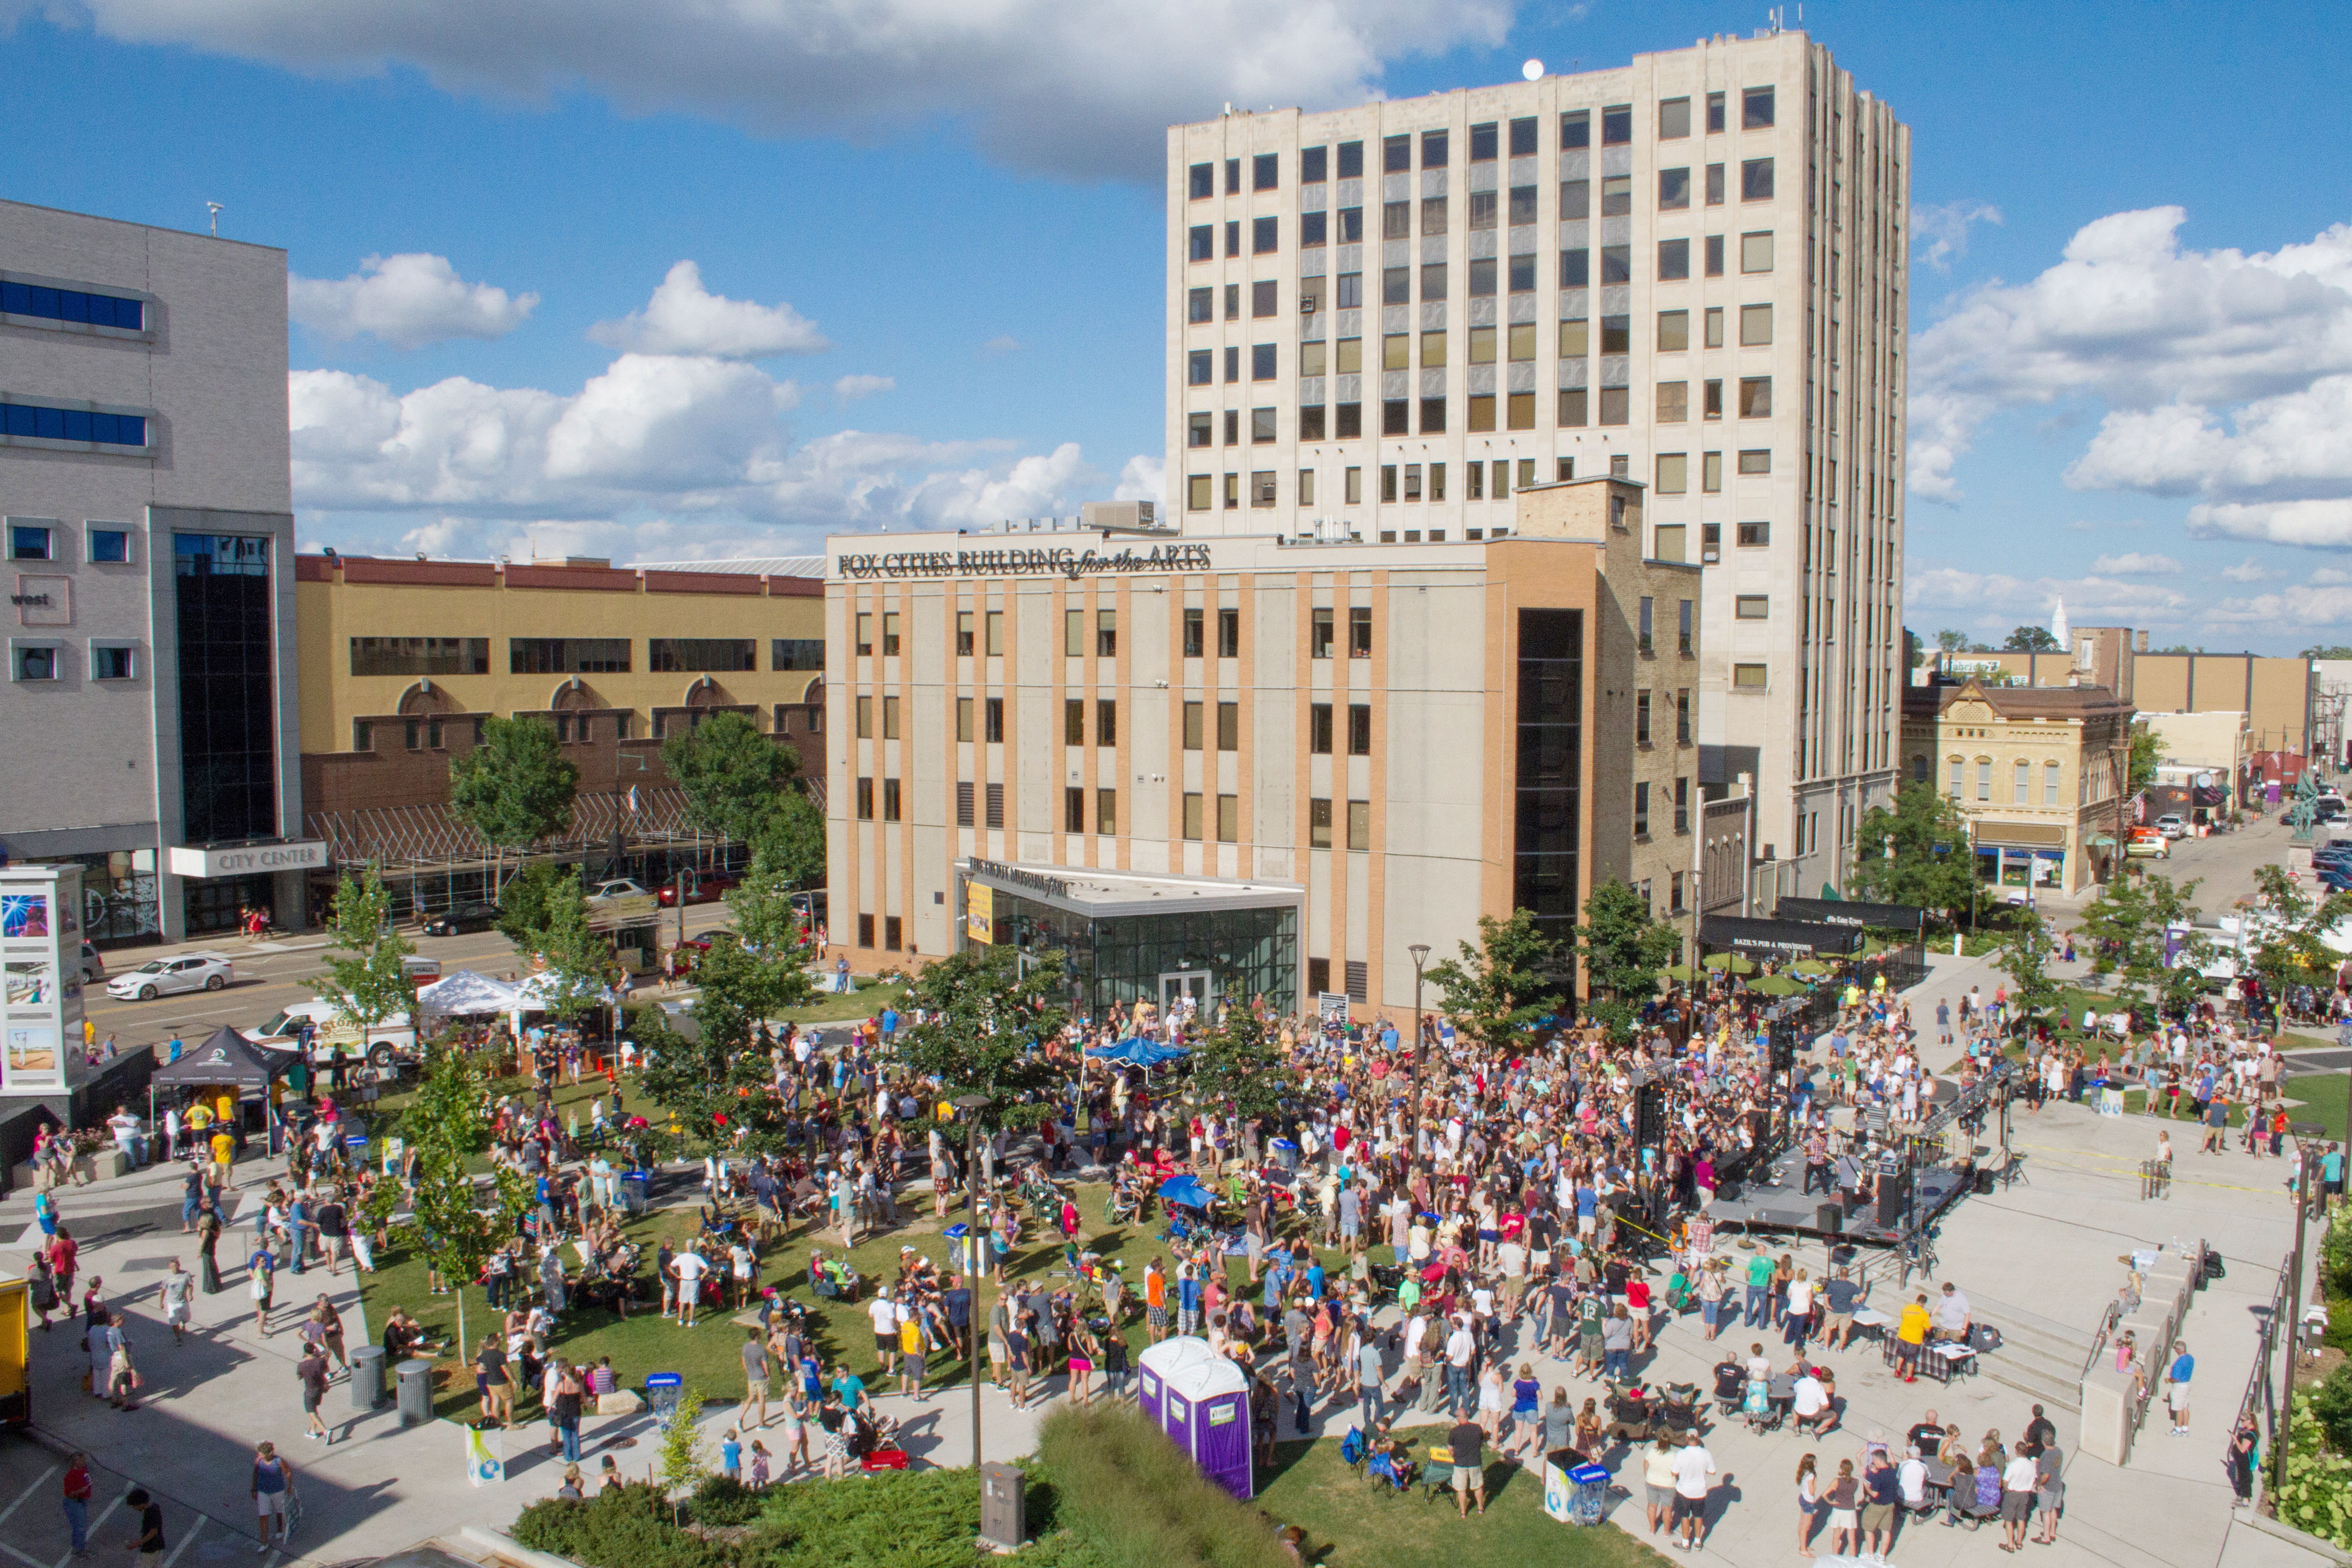 Appleton, Wisconsin. In addition to its natural,  Midwestern charm, Appleton draws new residents to its strong stock of affordable housing. The median home price is about $120.000.